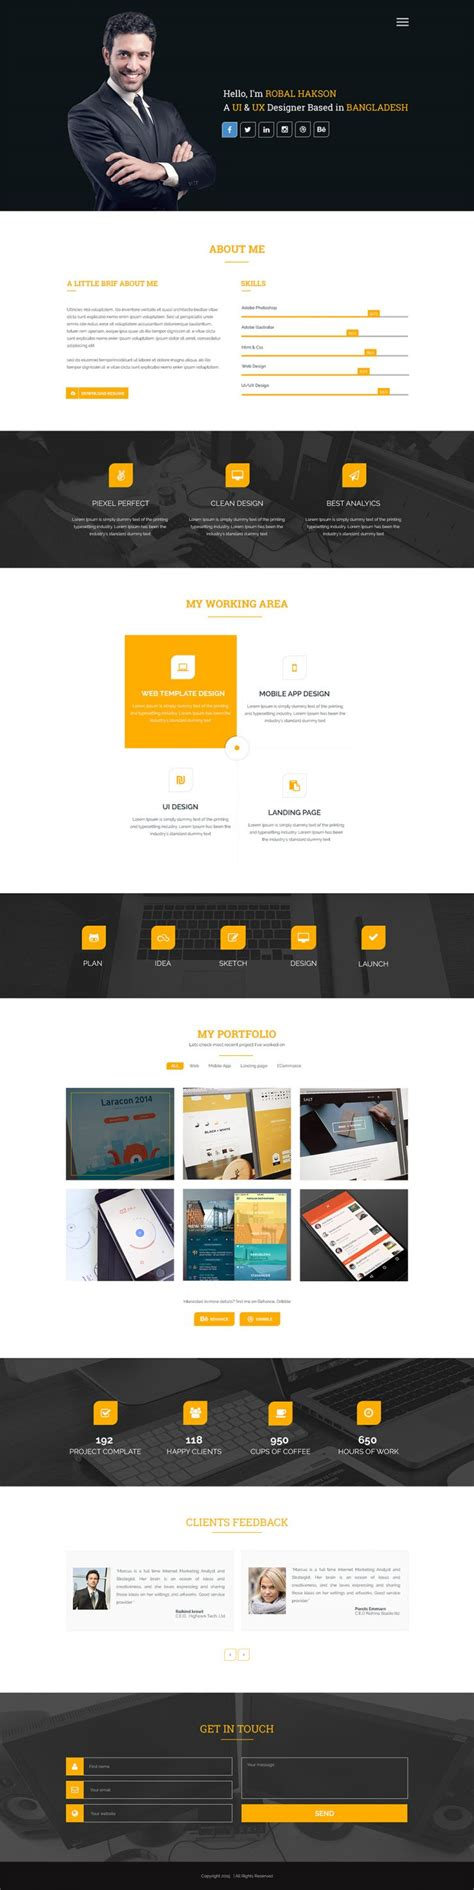 Clean One Page Corporate Portfolio Website Template Free Psd Download Download Psd Professional Portfolio Website Templates